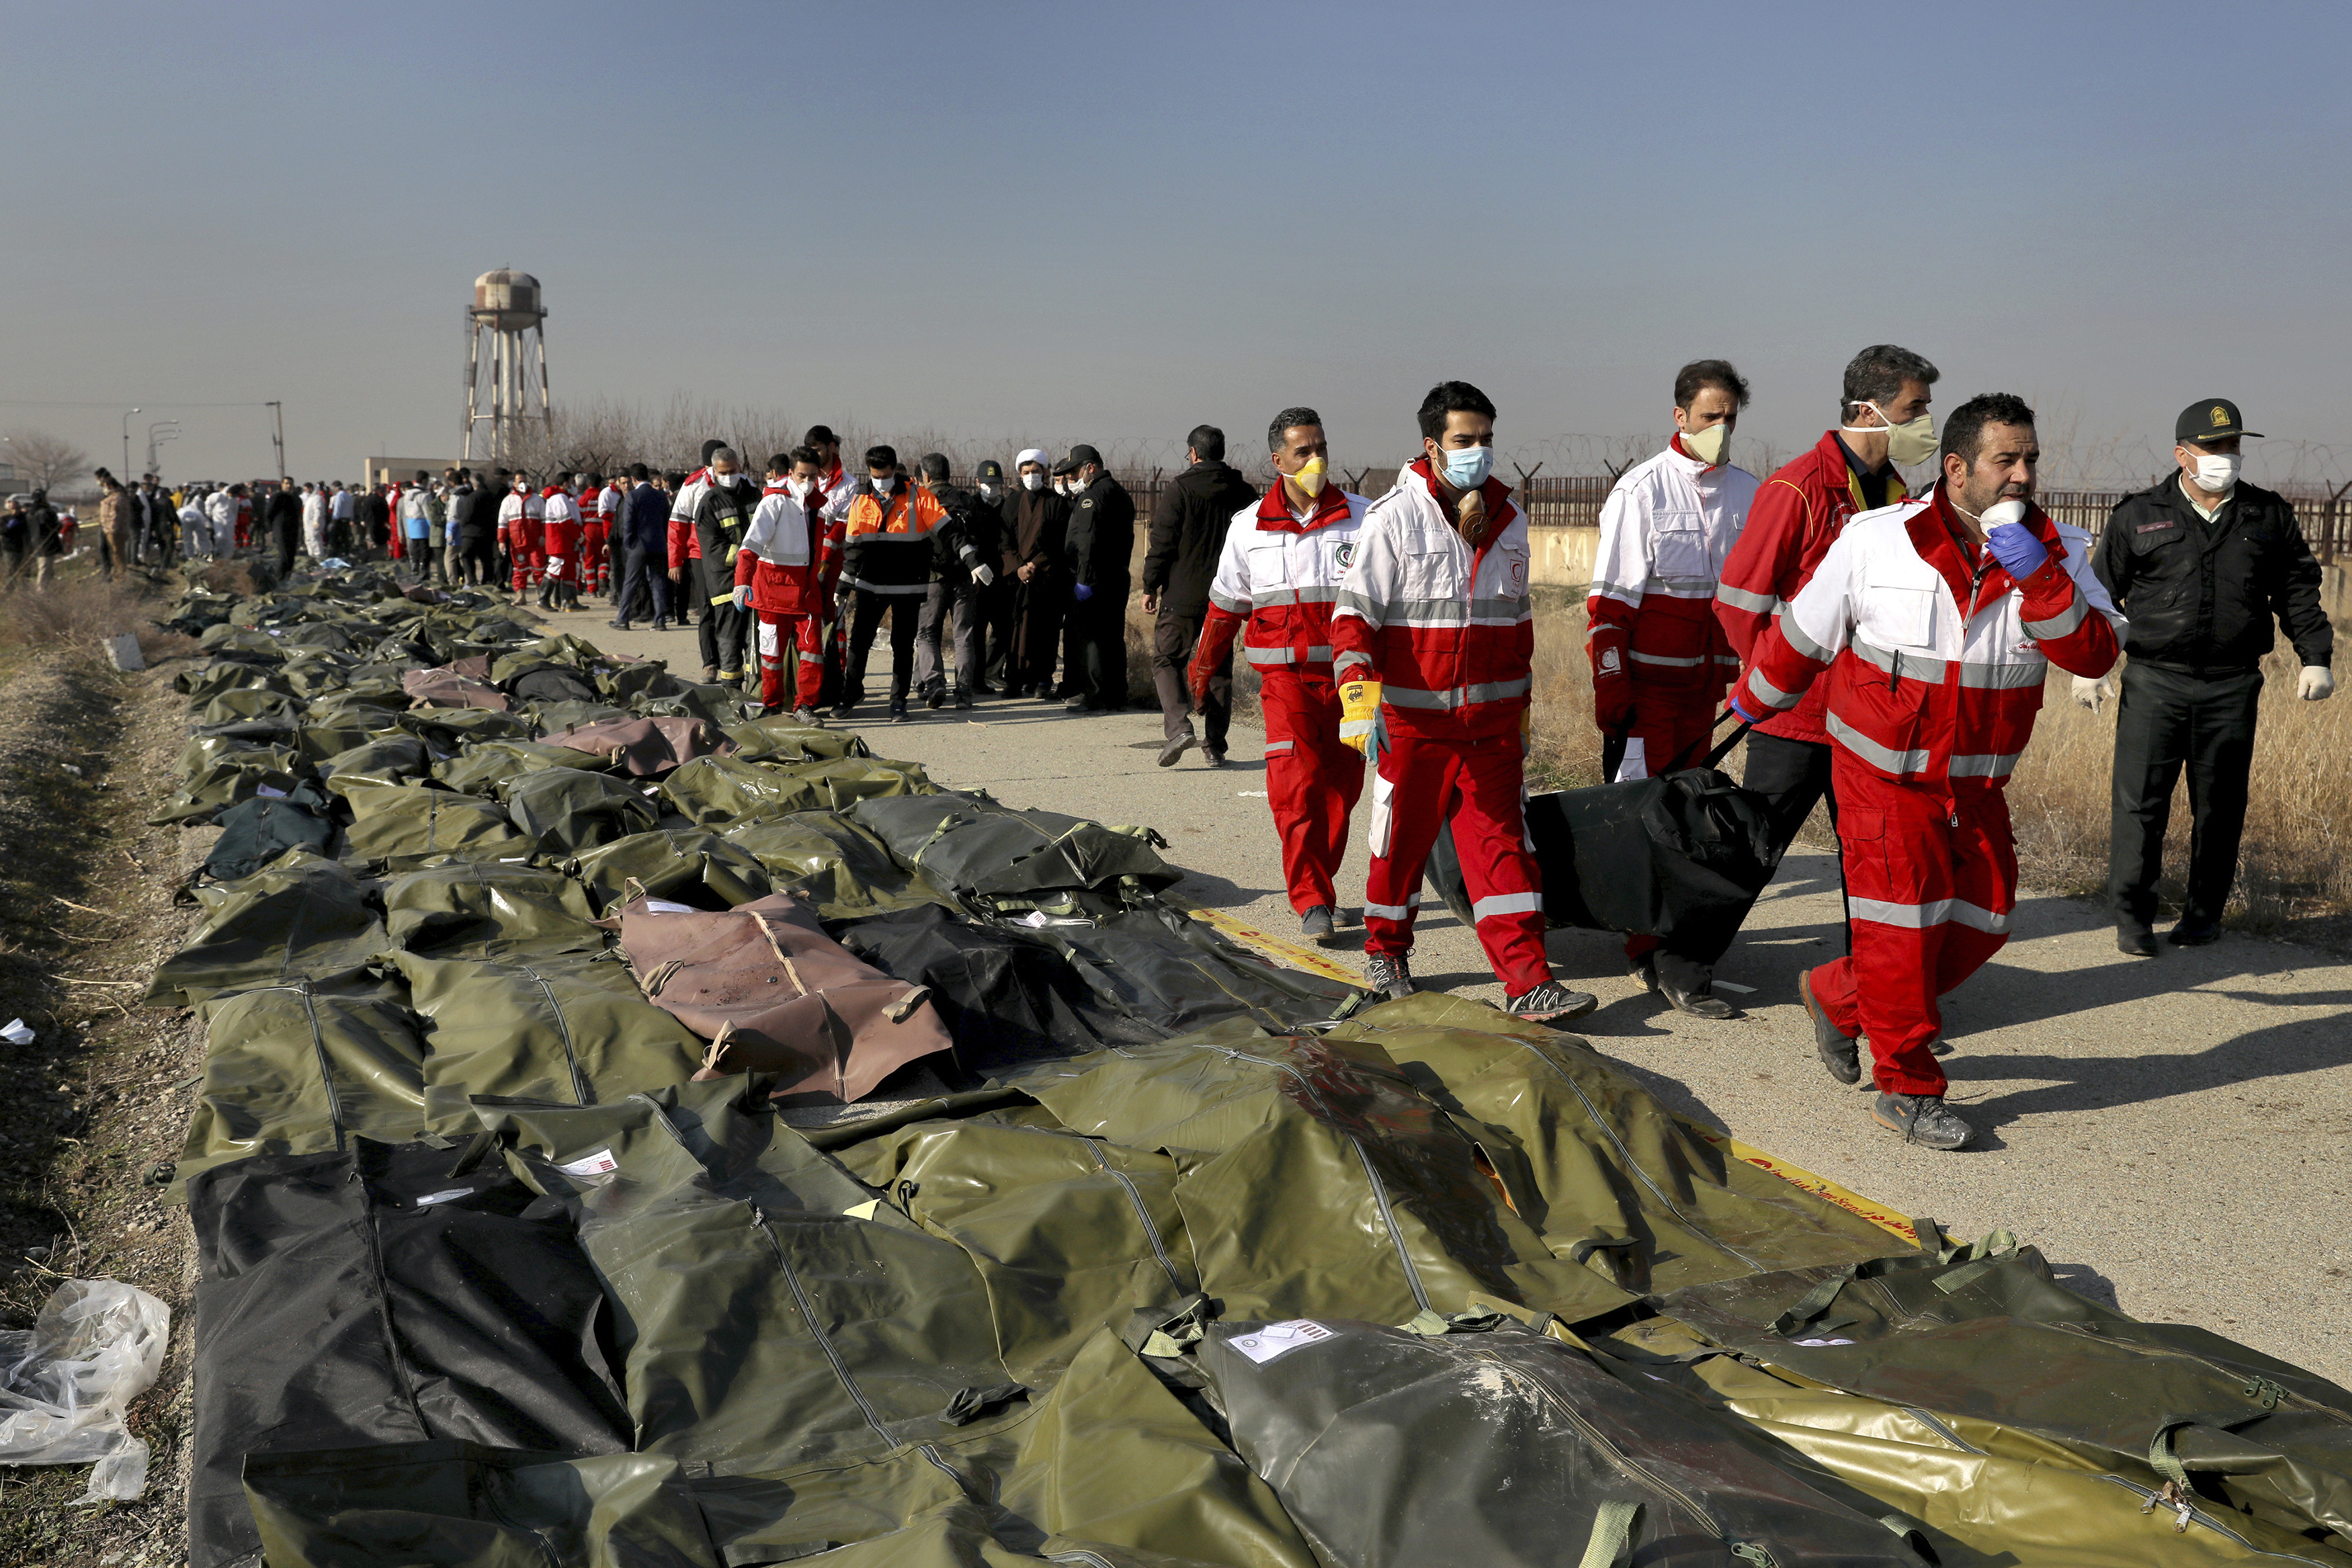 Rescue workers carry the body of a victim of a Ukrainian plane crash in Shahedshahr, southwest of the capital Tehran, Iran, on Wednesday, Jan. 8, 2020. A Ukrainian passenger jet carrying 176 people crashed on Wednesday, just minutes after taking off from the Iranian capital's main airport, turning farmland on the outskirts of Tehran into fields of flaming debris and killing all on board. (AP Photo/Ebrahim Noroozi) ORG XMIT: ENO101